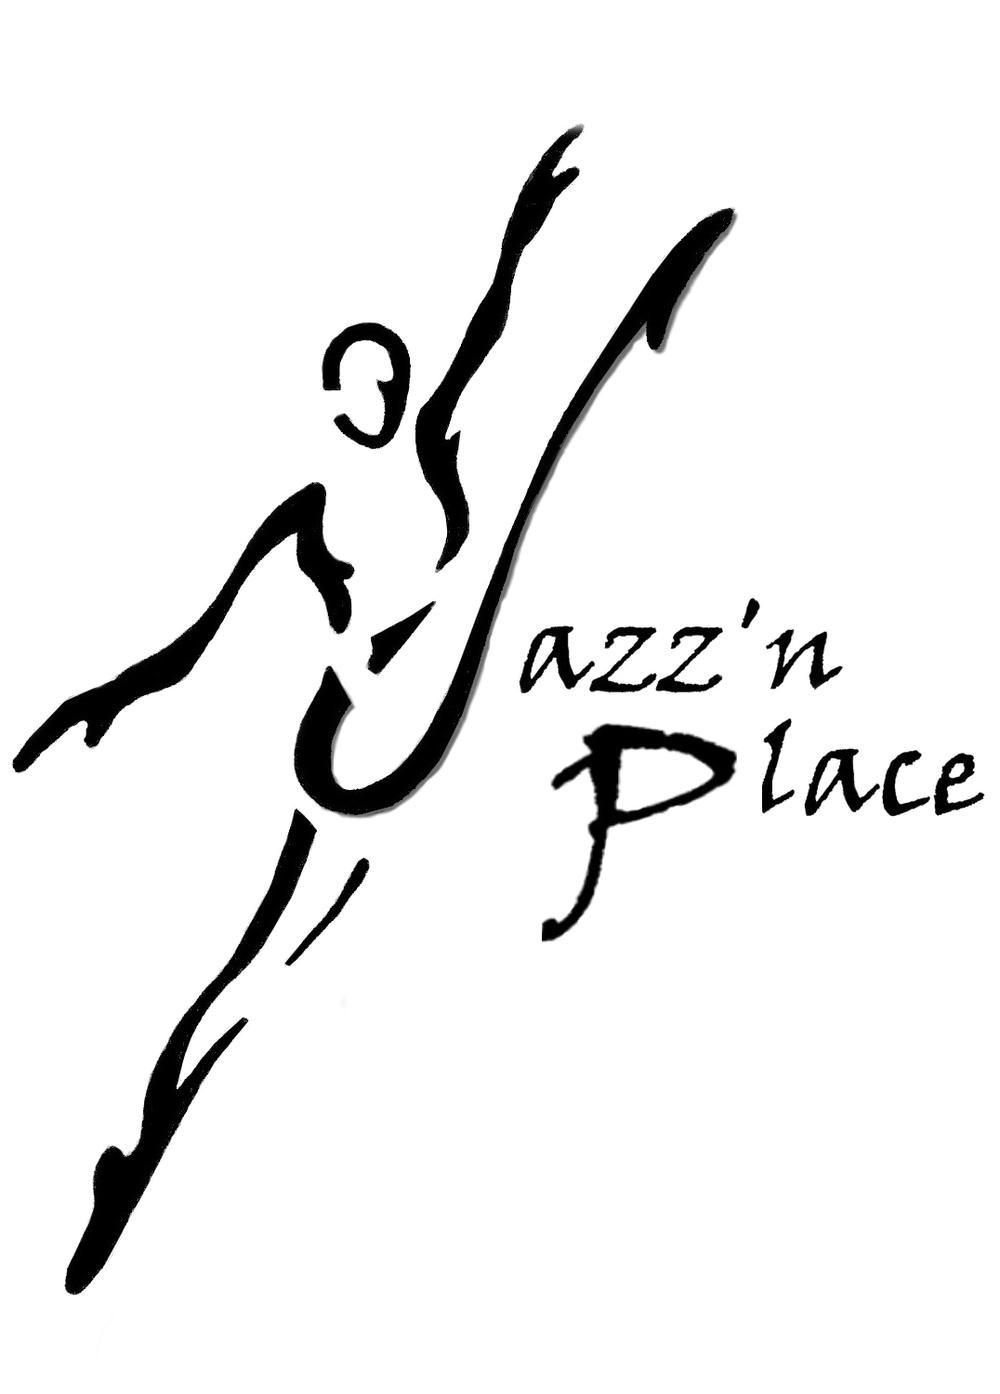 Jazz'n Place Logo Cropped.jpg